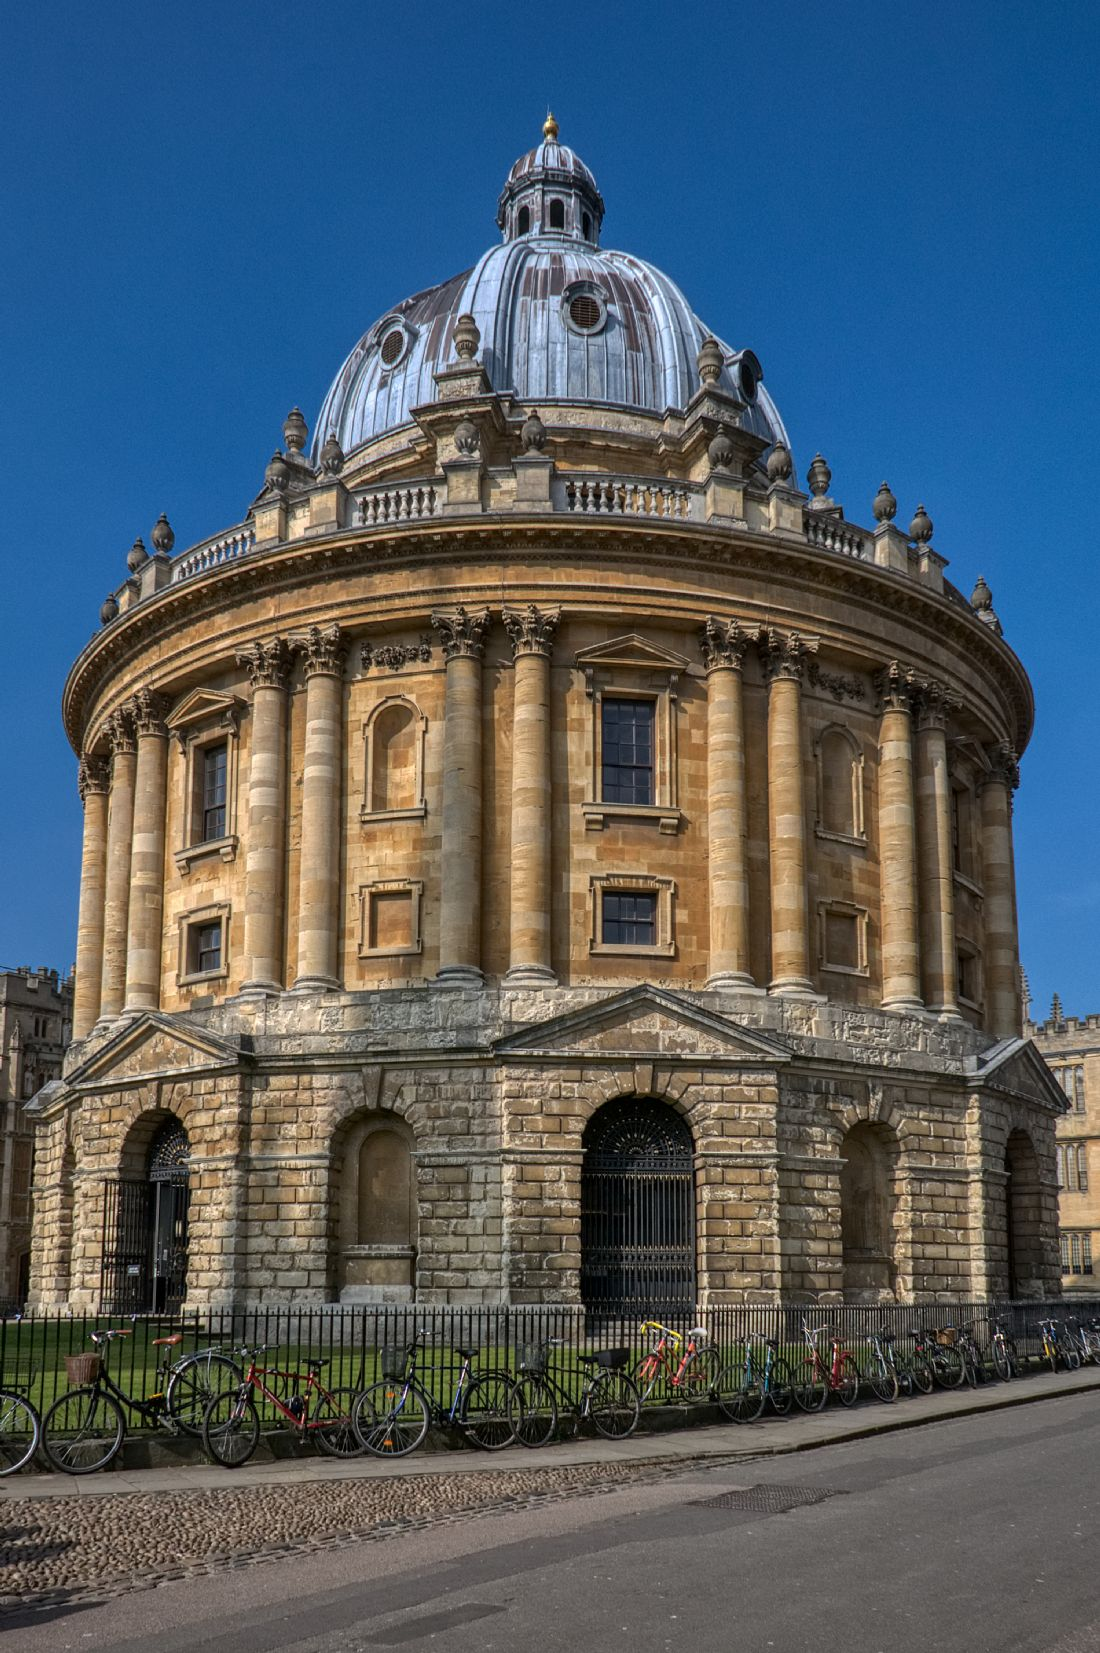 Chris Day | The Radcliffe Camera Oxford